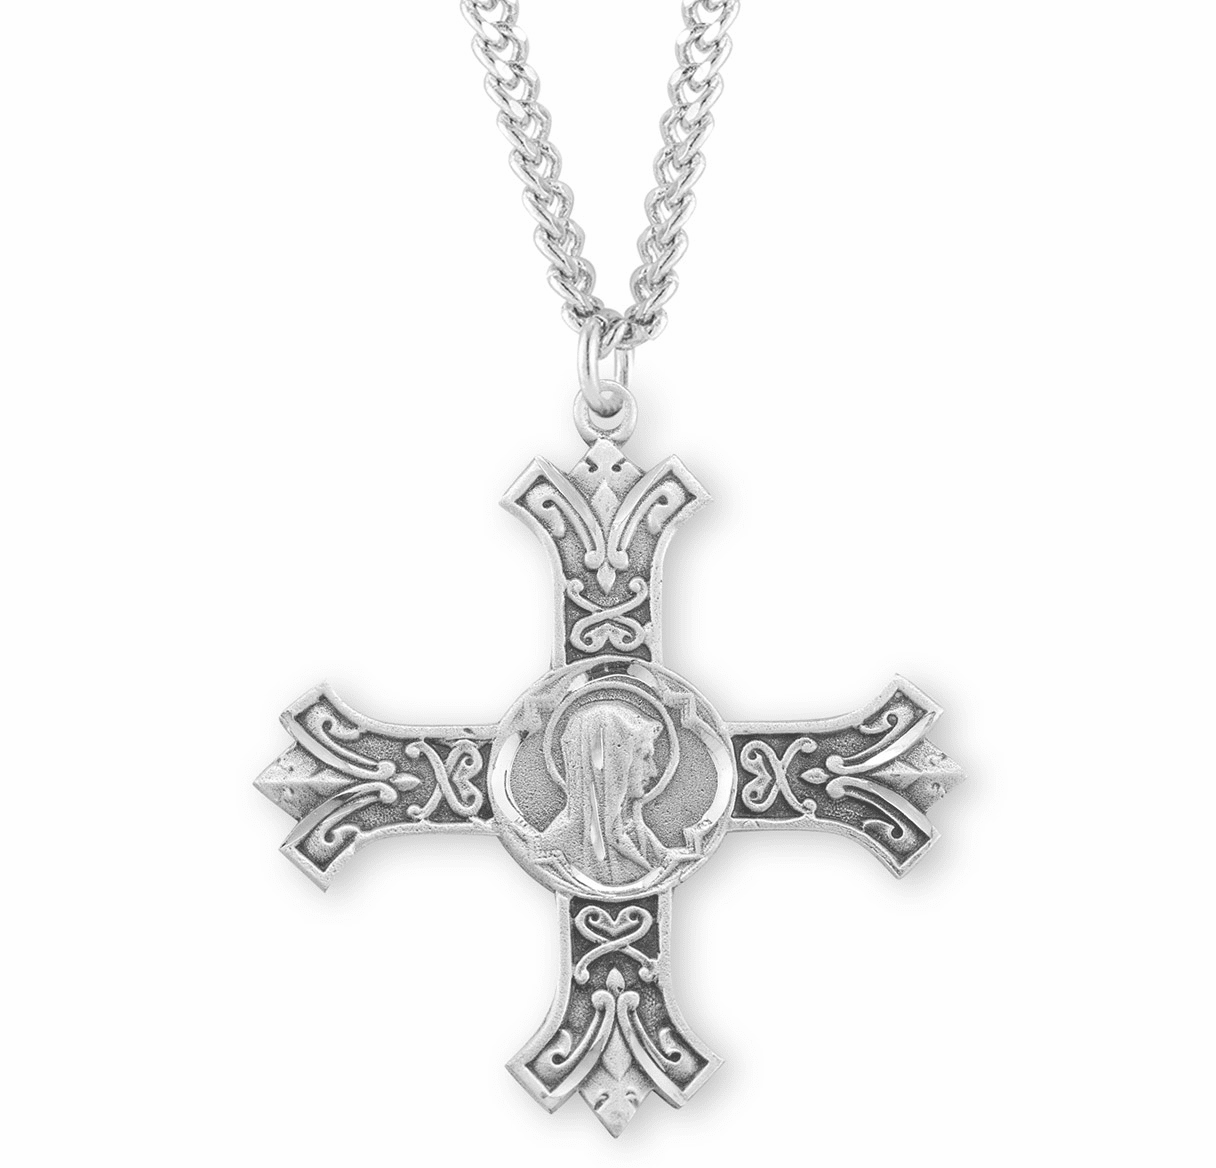 HMH Religious Our Lady of Sorrow Sterling Silver Cross Medal Necklace